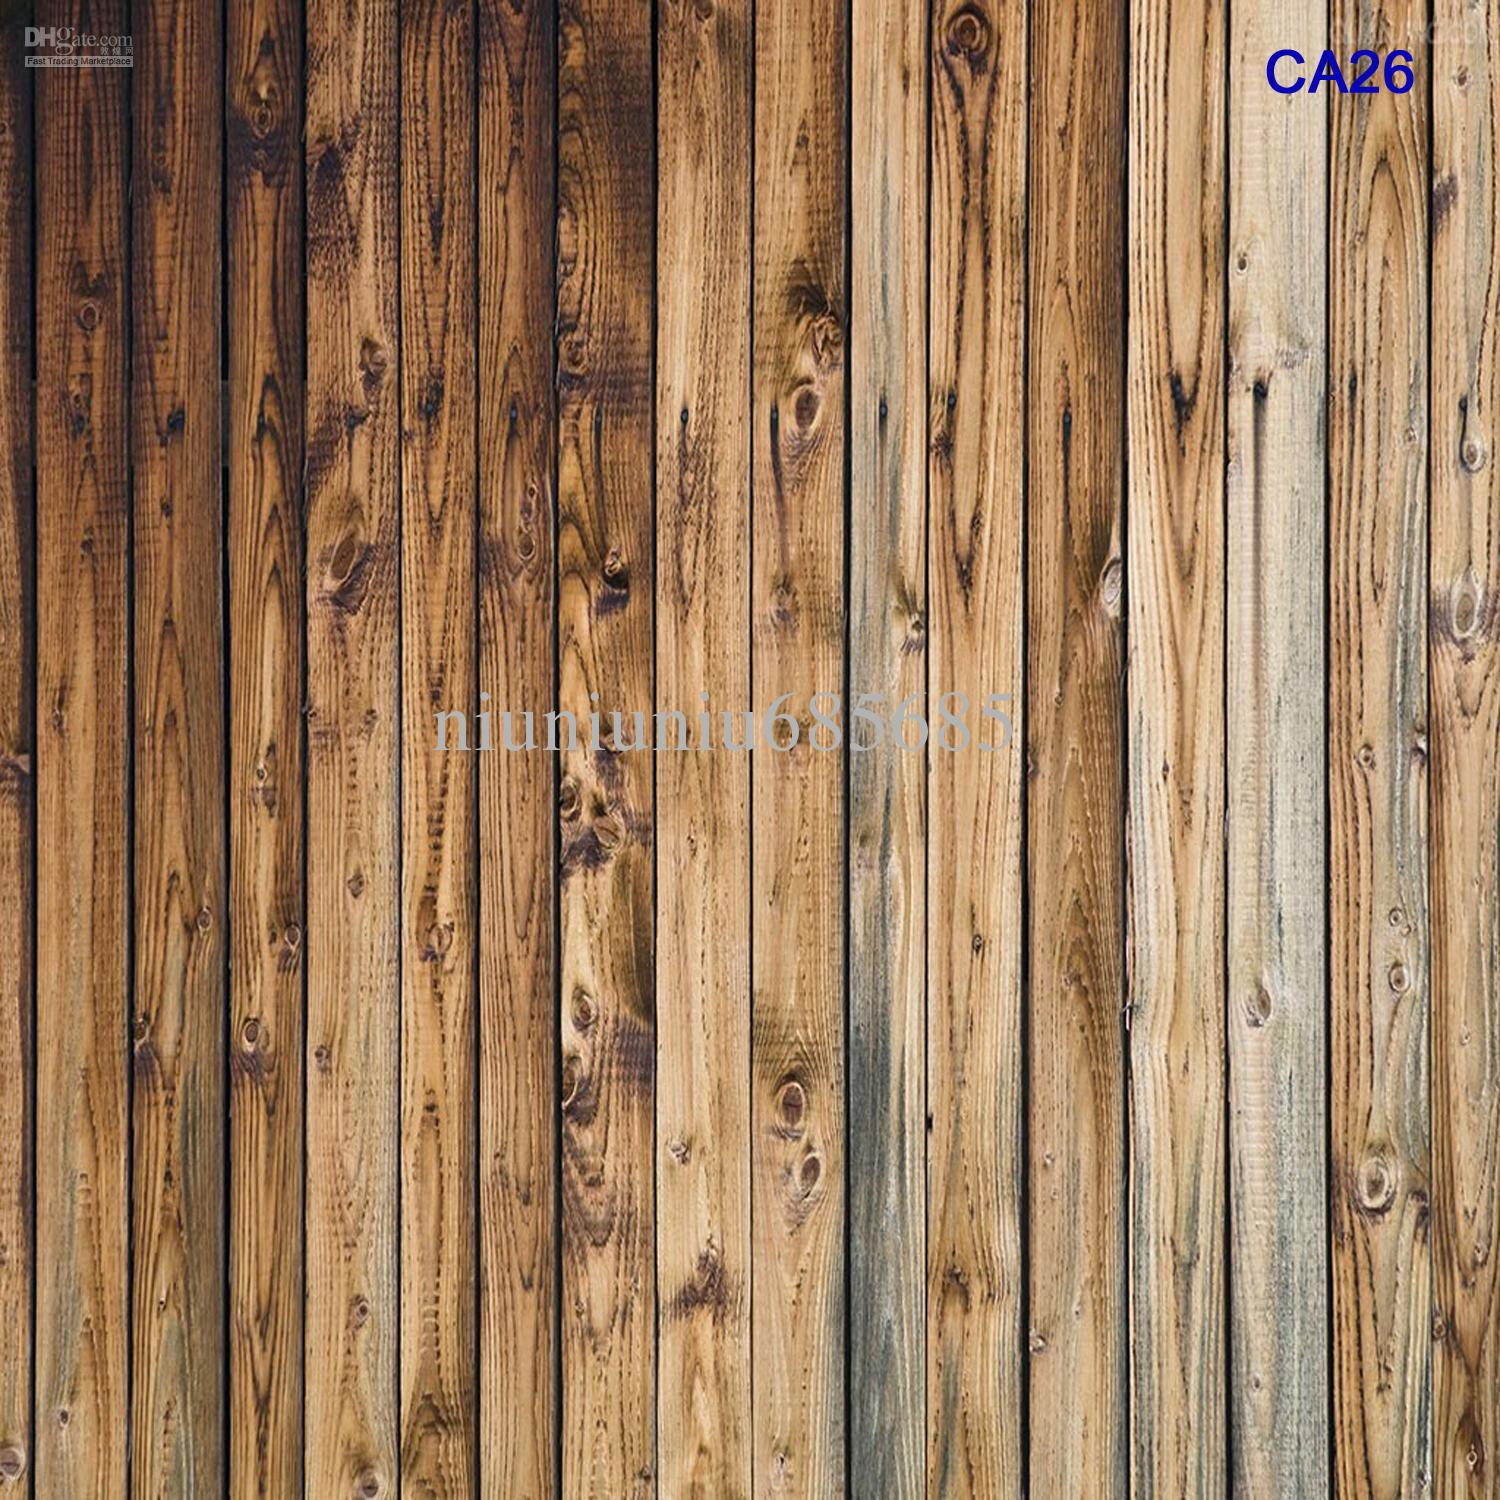 18 Wood Vinyl Photography Backdrops Images